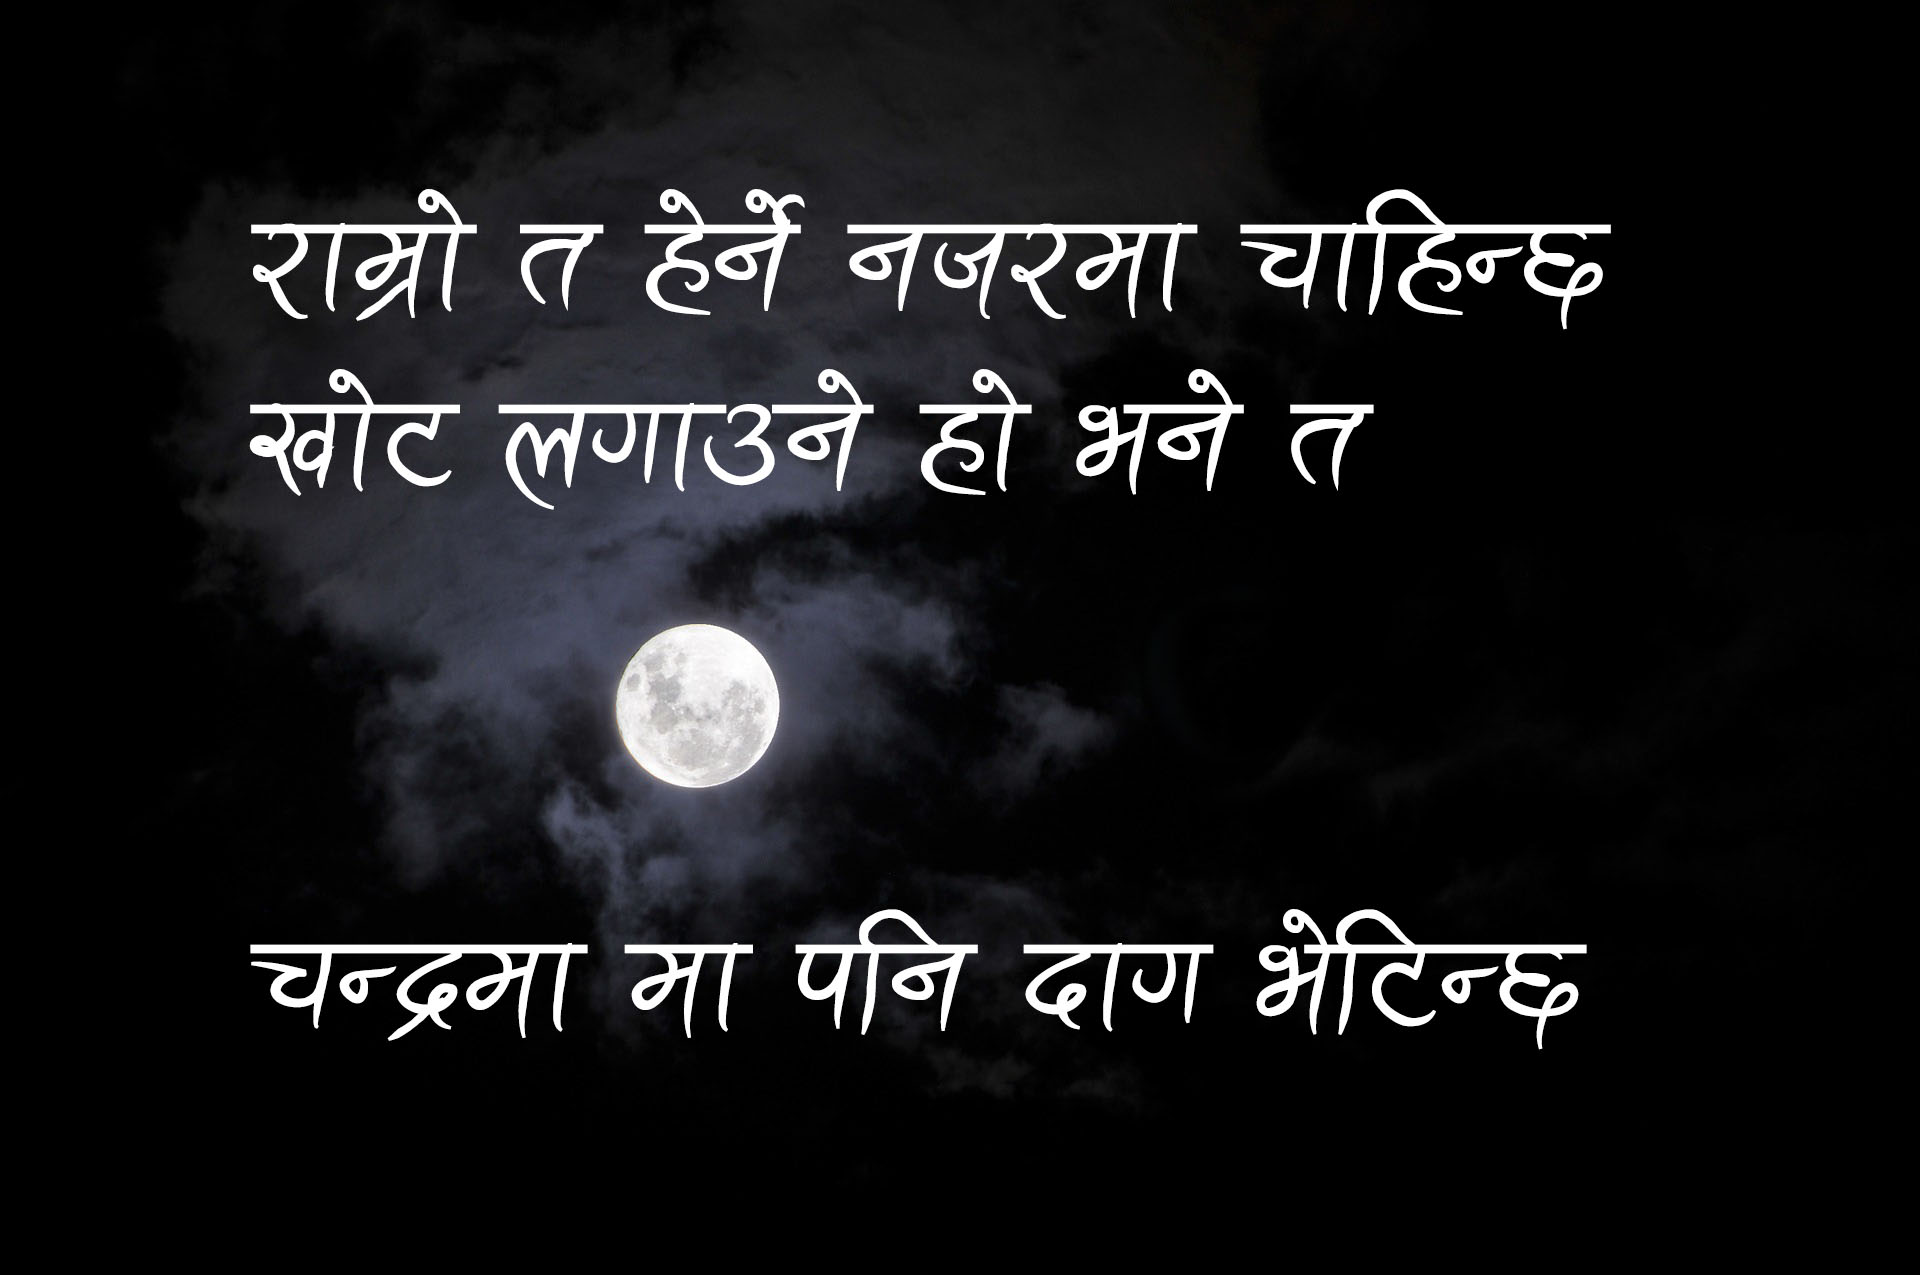 to continuously update this post to add new and awesome Nepali quotes ...